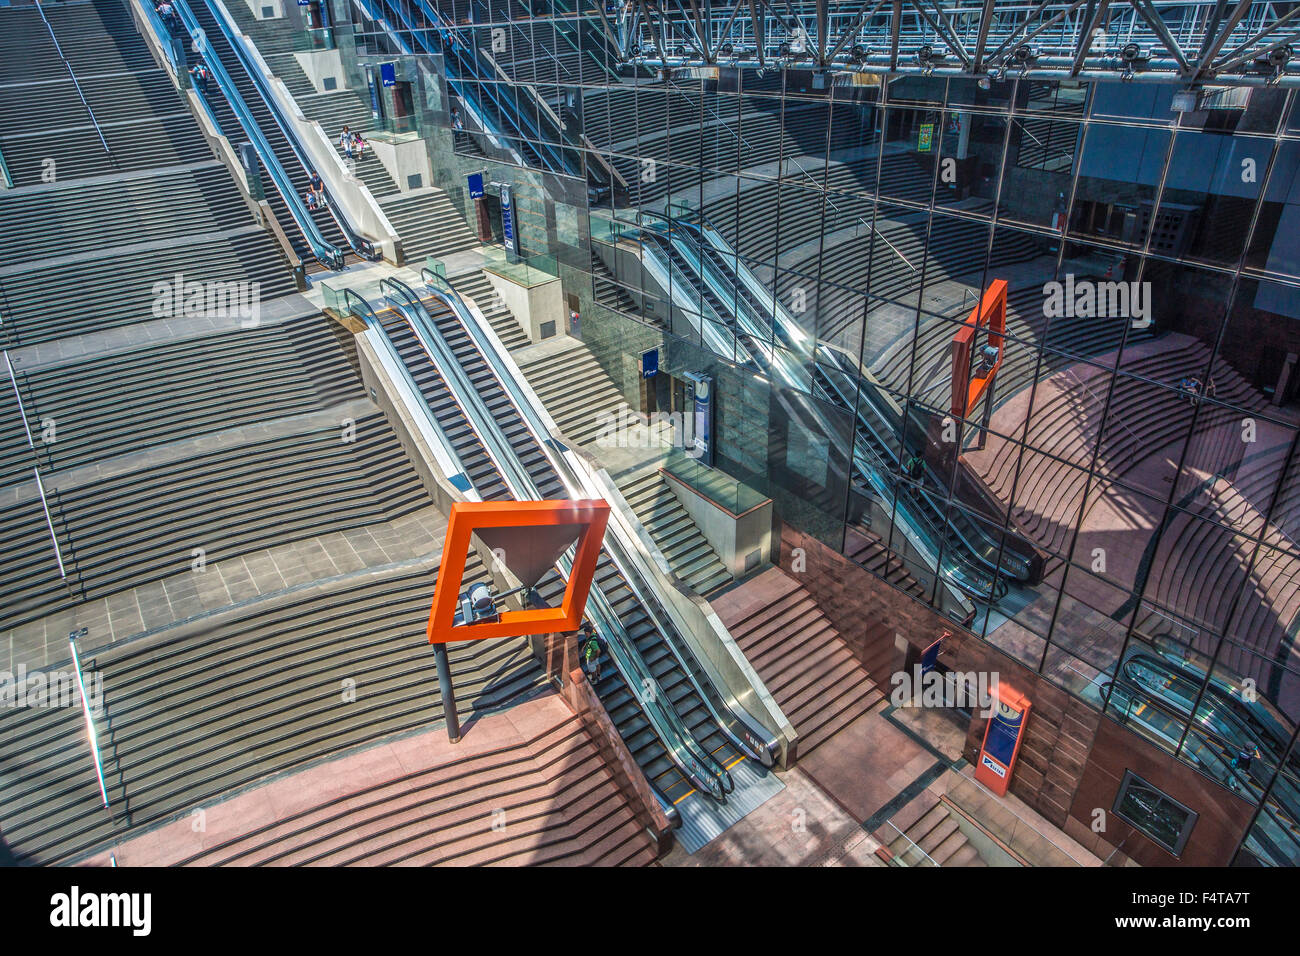 Japan, Kyoto City, Kyoto Railway Station, interior - Stock Image